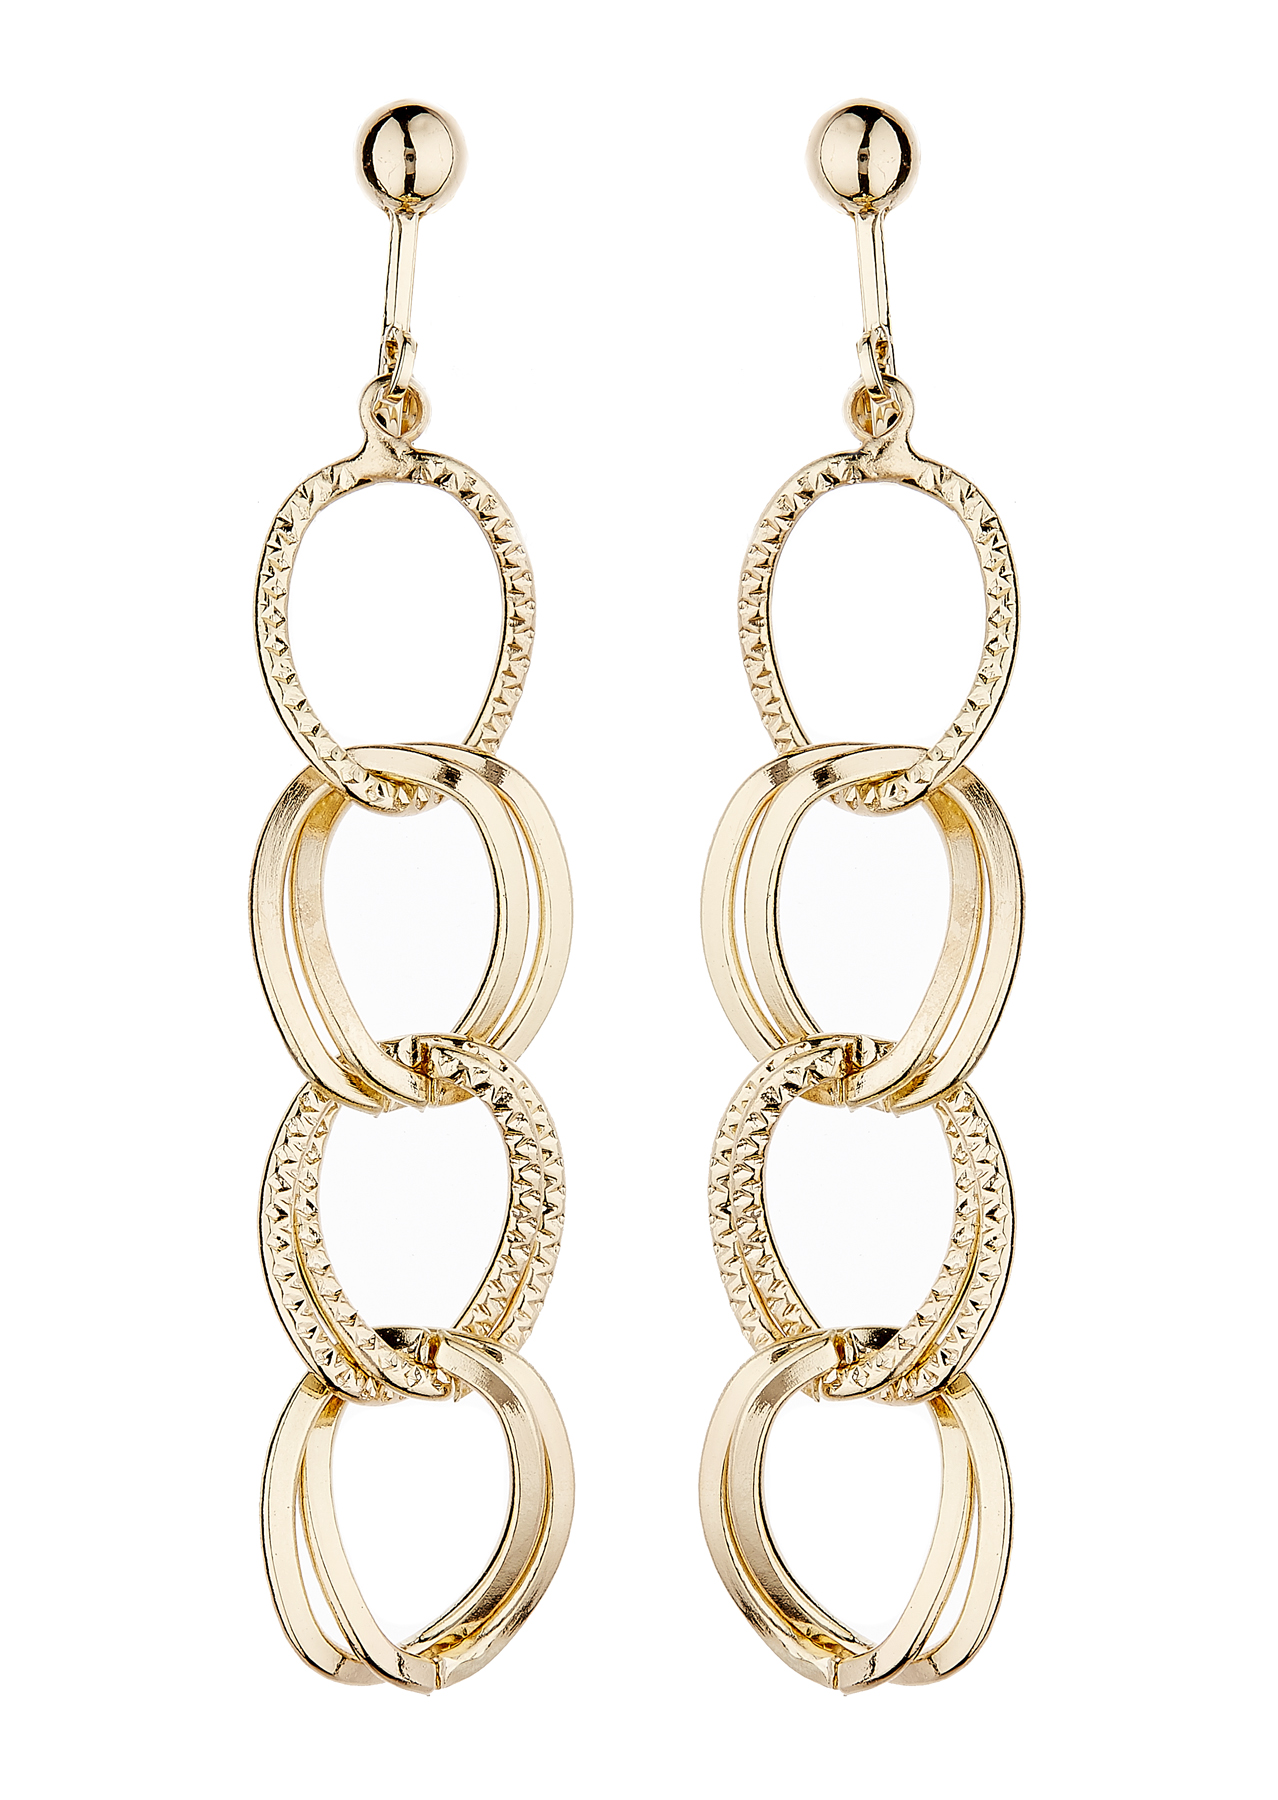 Clip On Earrings - Kadisha G - gold plated with linked hoops